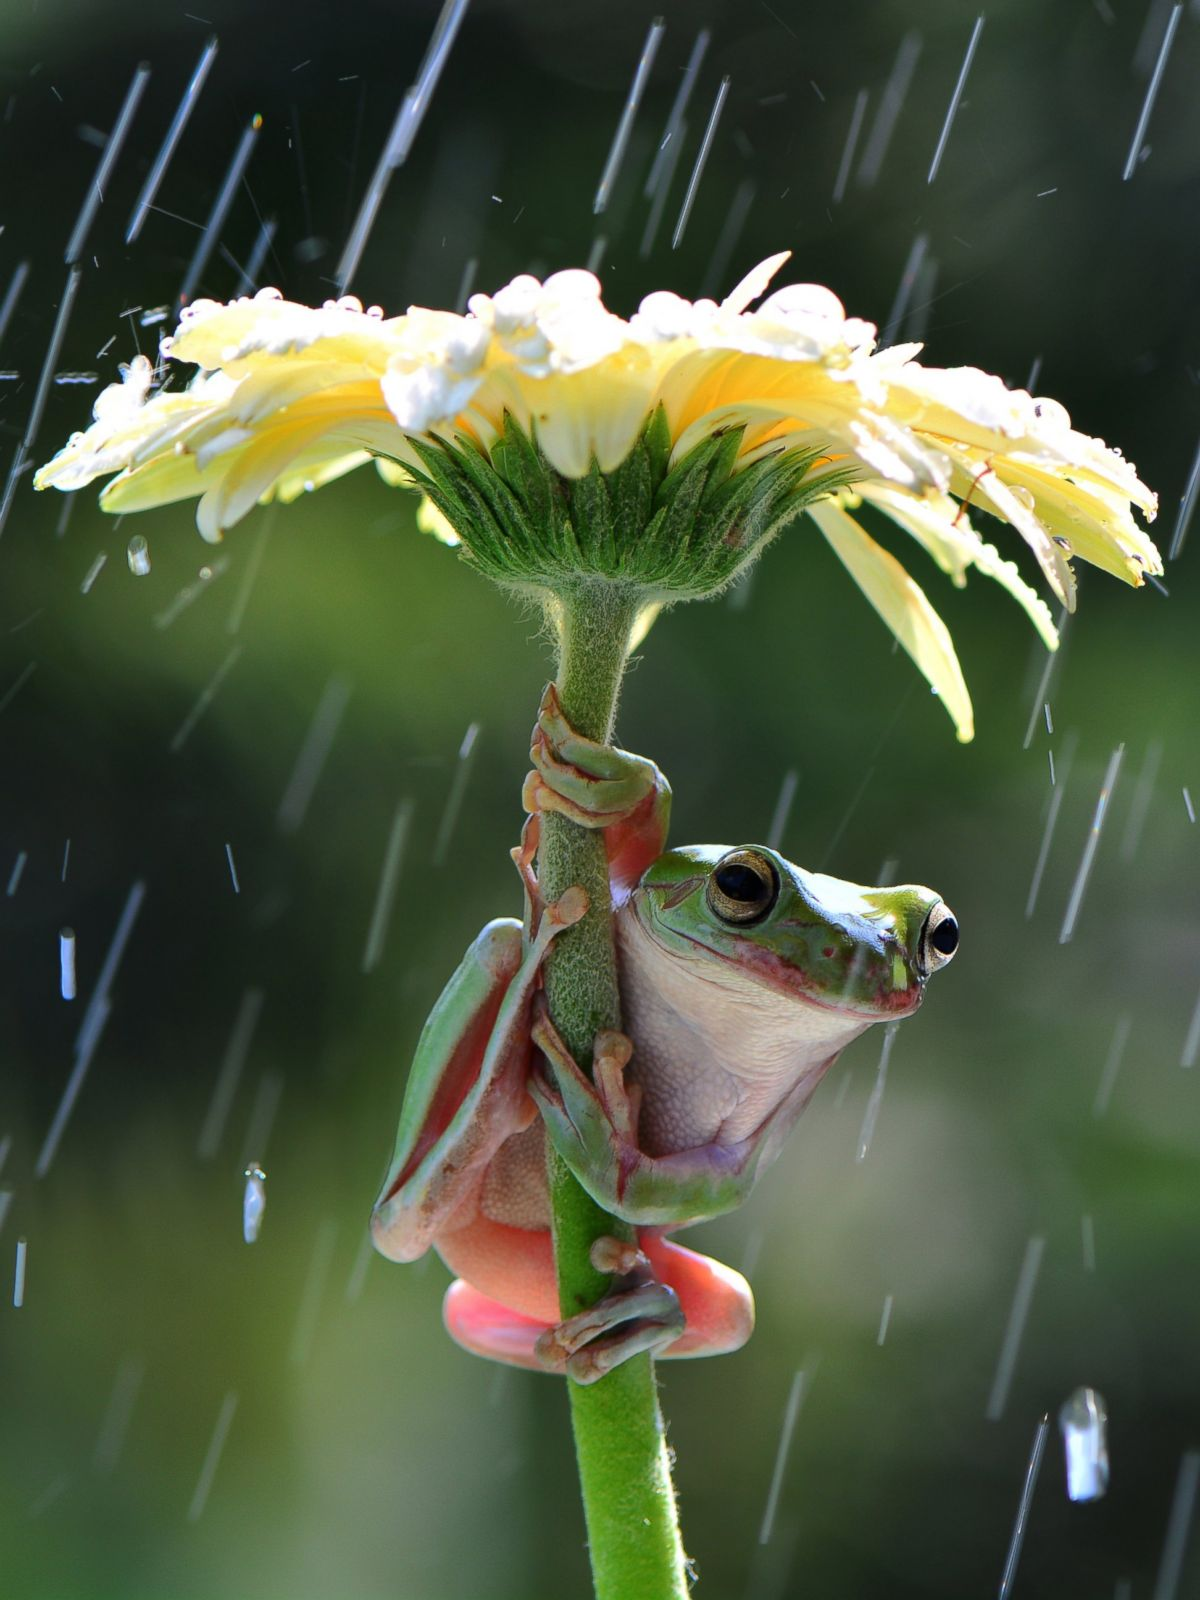 See How A Frog Stays Dry in Rain Picture | Amazing animals ...